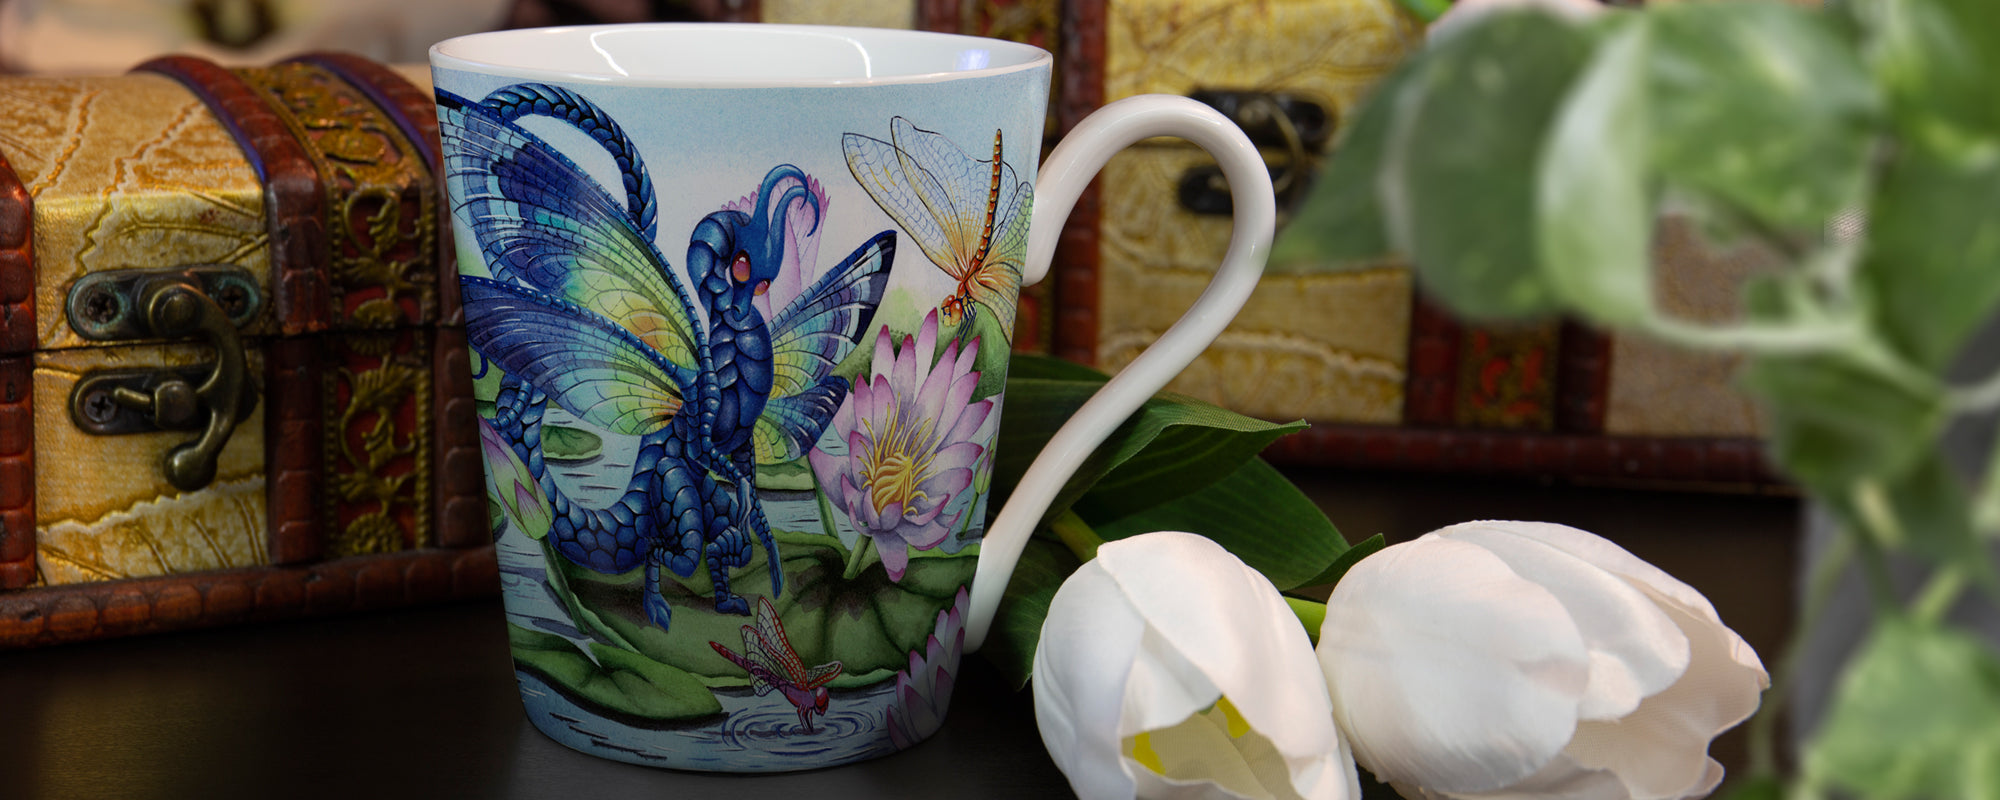 dragon mug on a table with flowers and treasure boxes